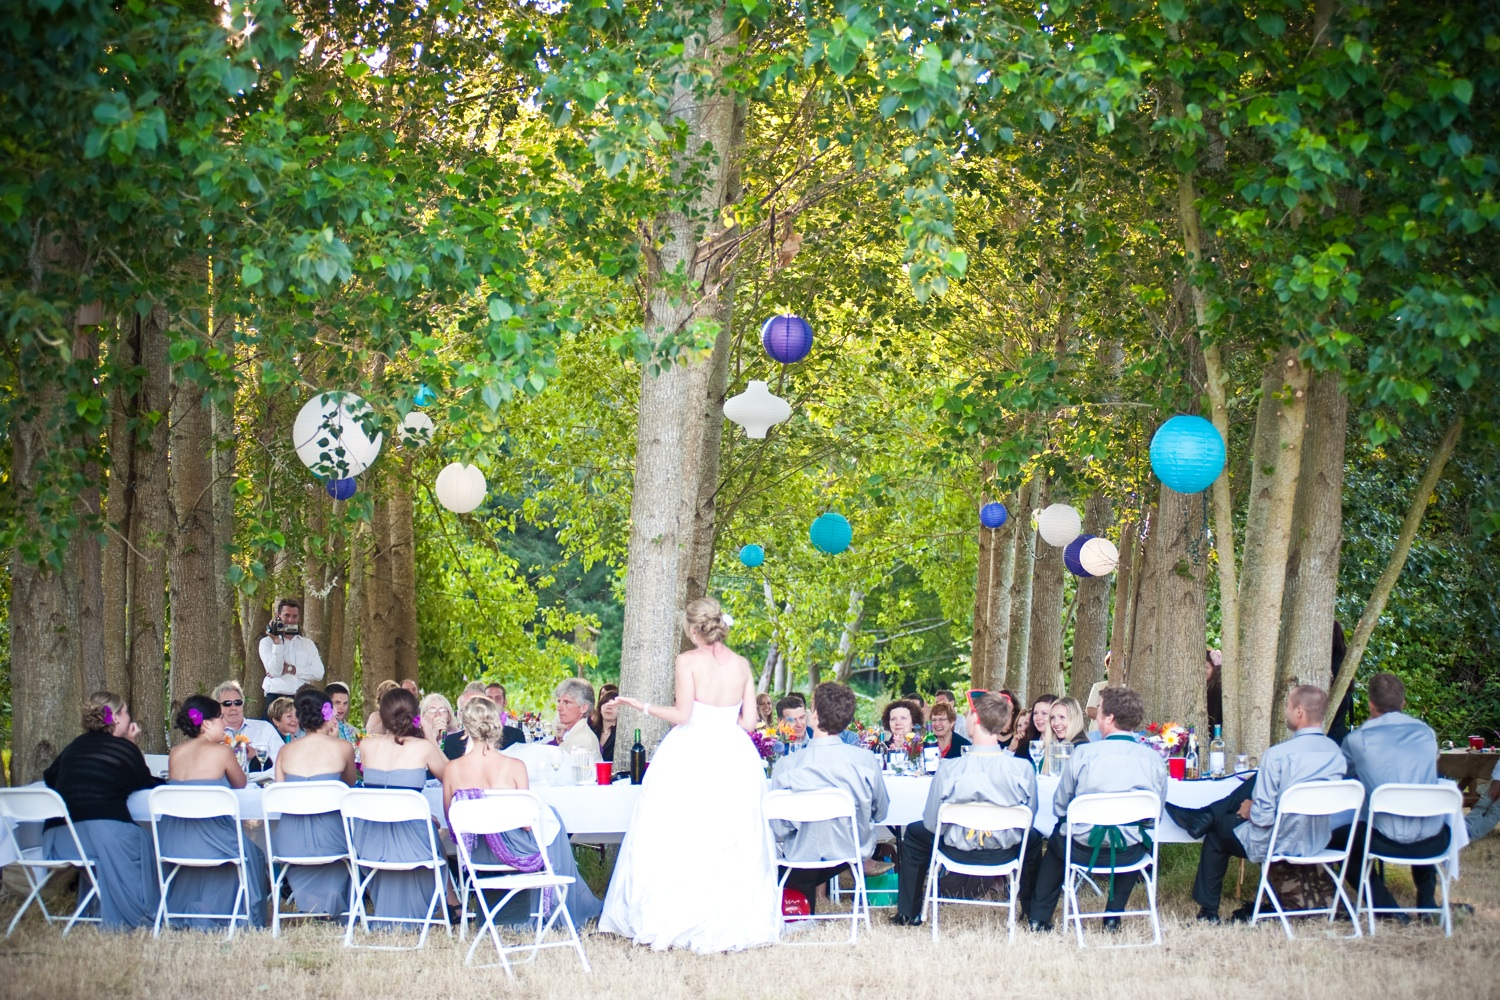 Outdoor weddings romantic decoration your outdoor wedding is 10 tips to a successful outdoor wedding onewed junglespirit